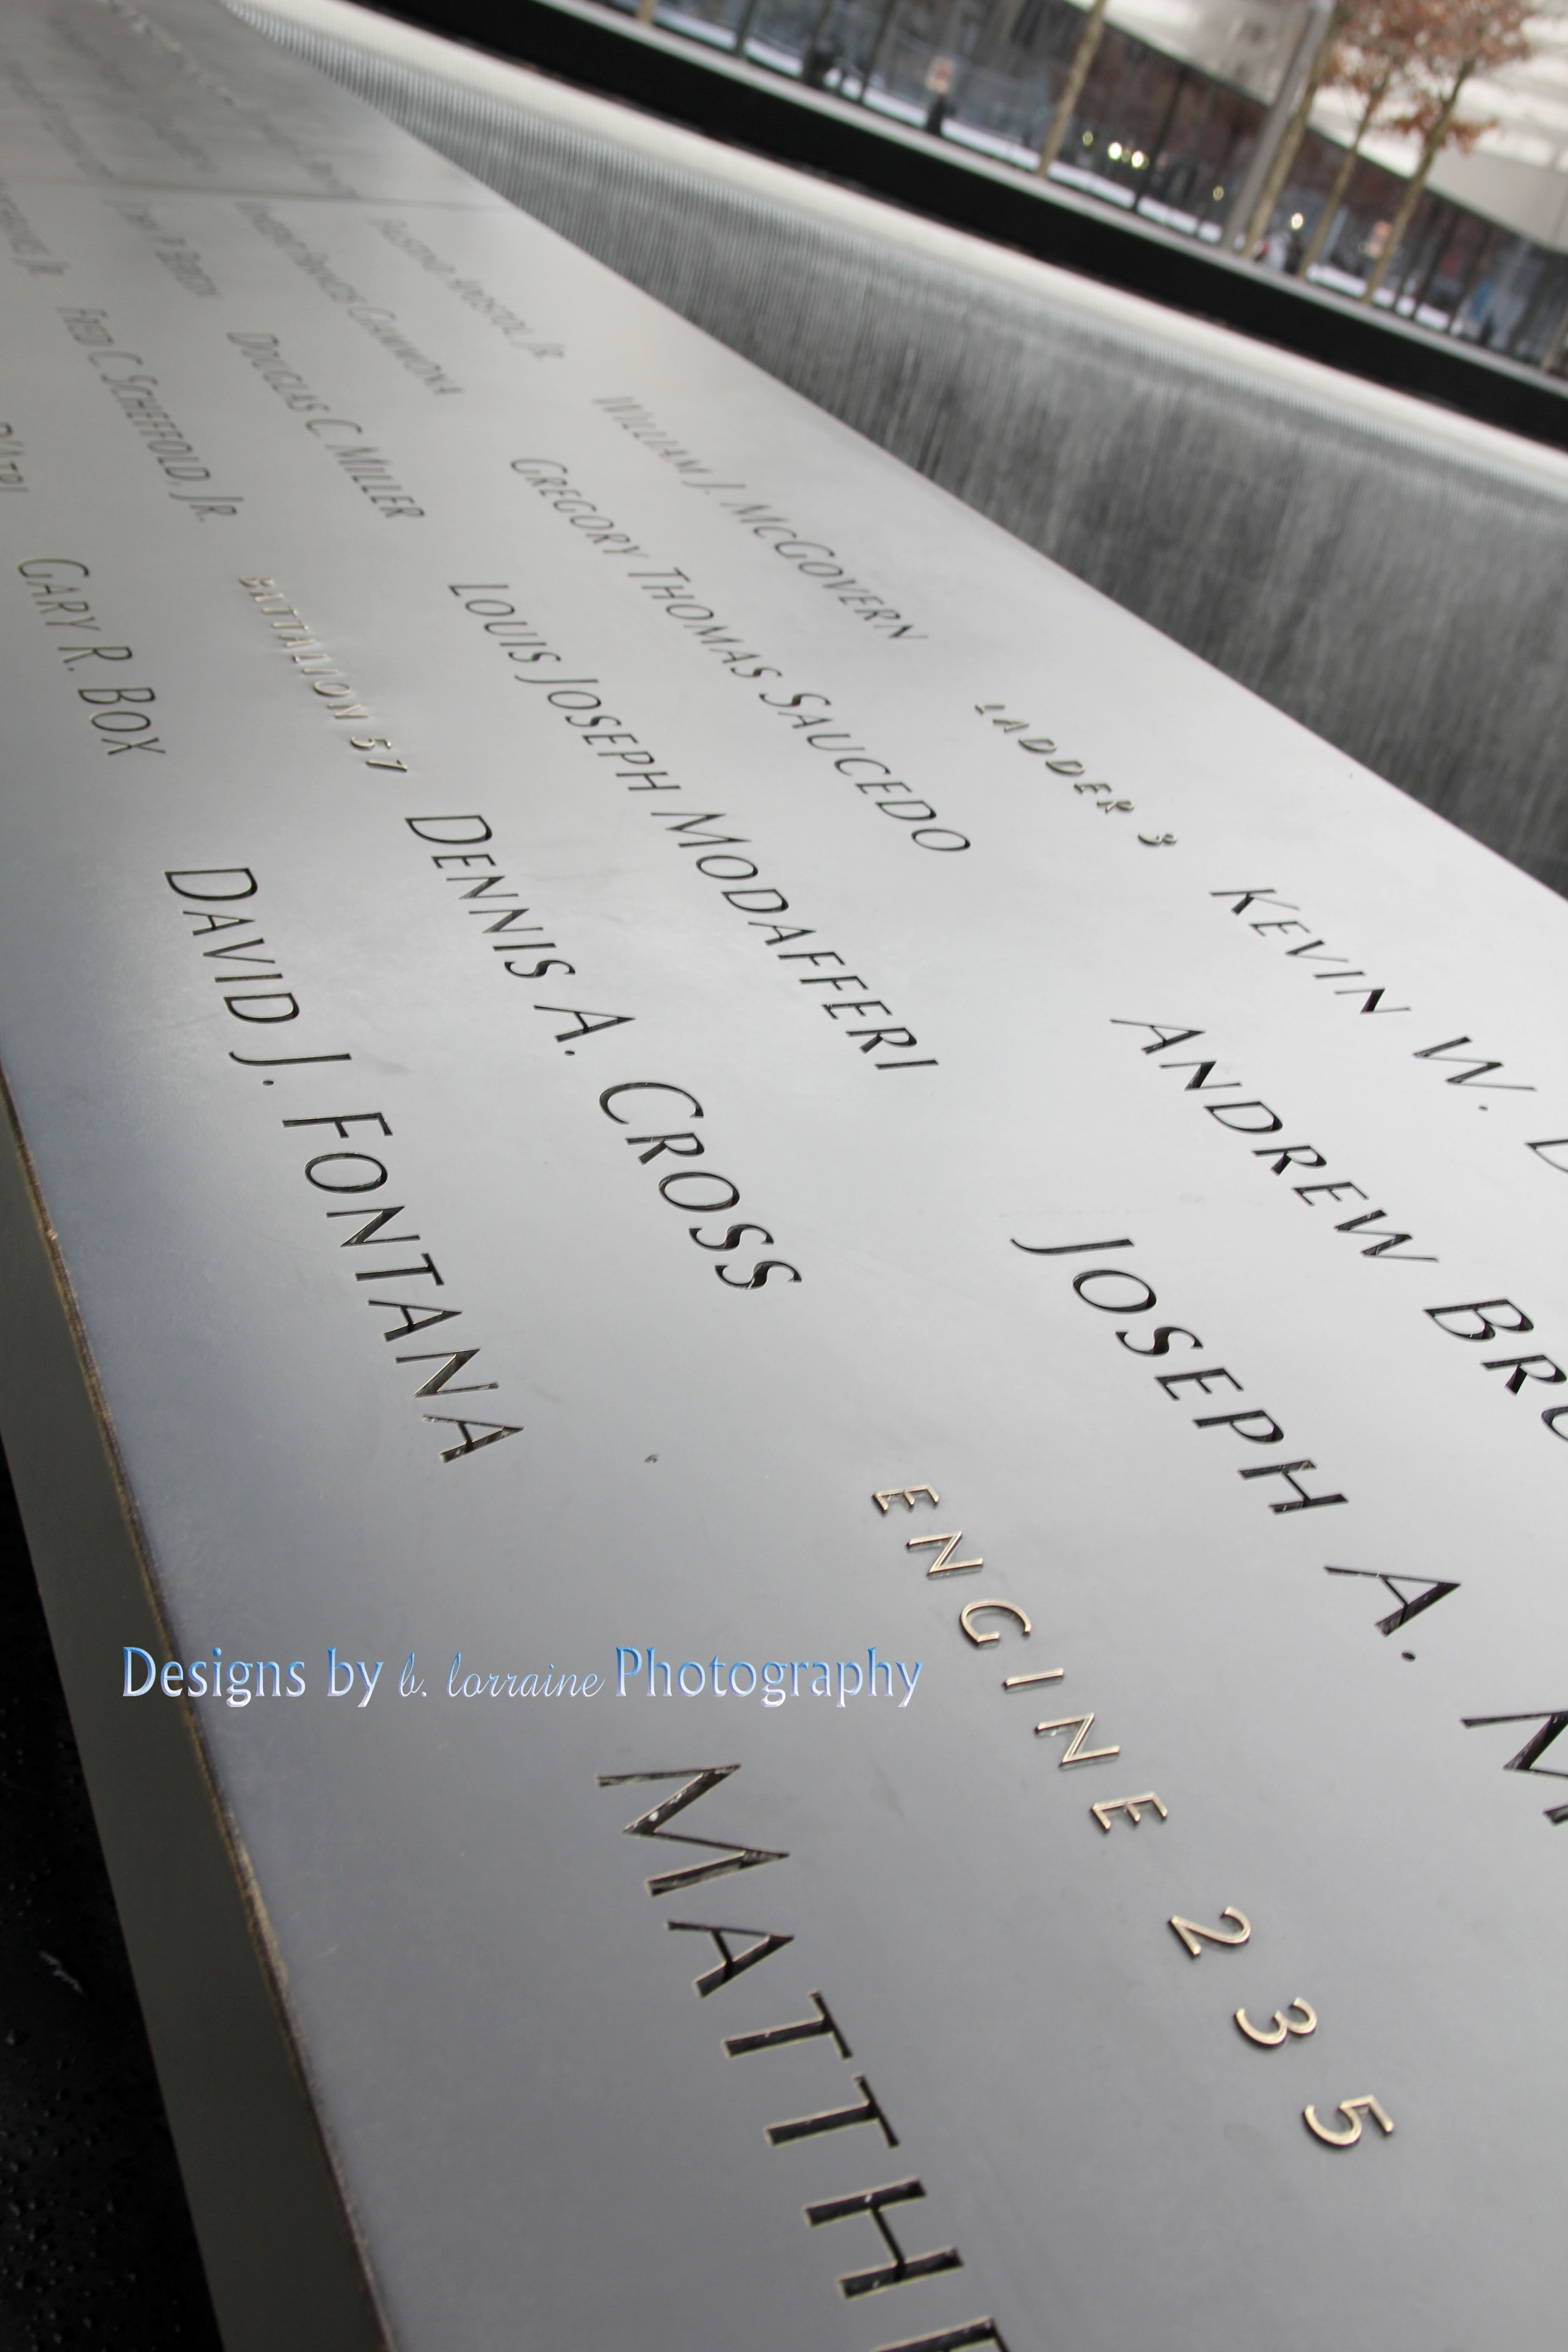 9/11 Memorial. A tribute to those fallen. Words cannot express....